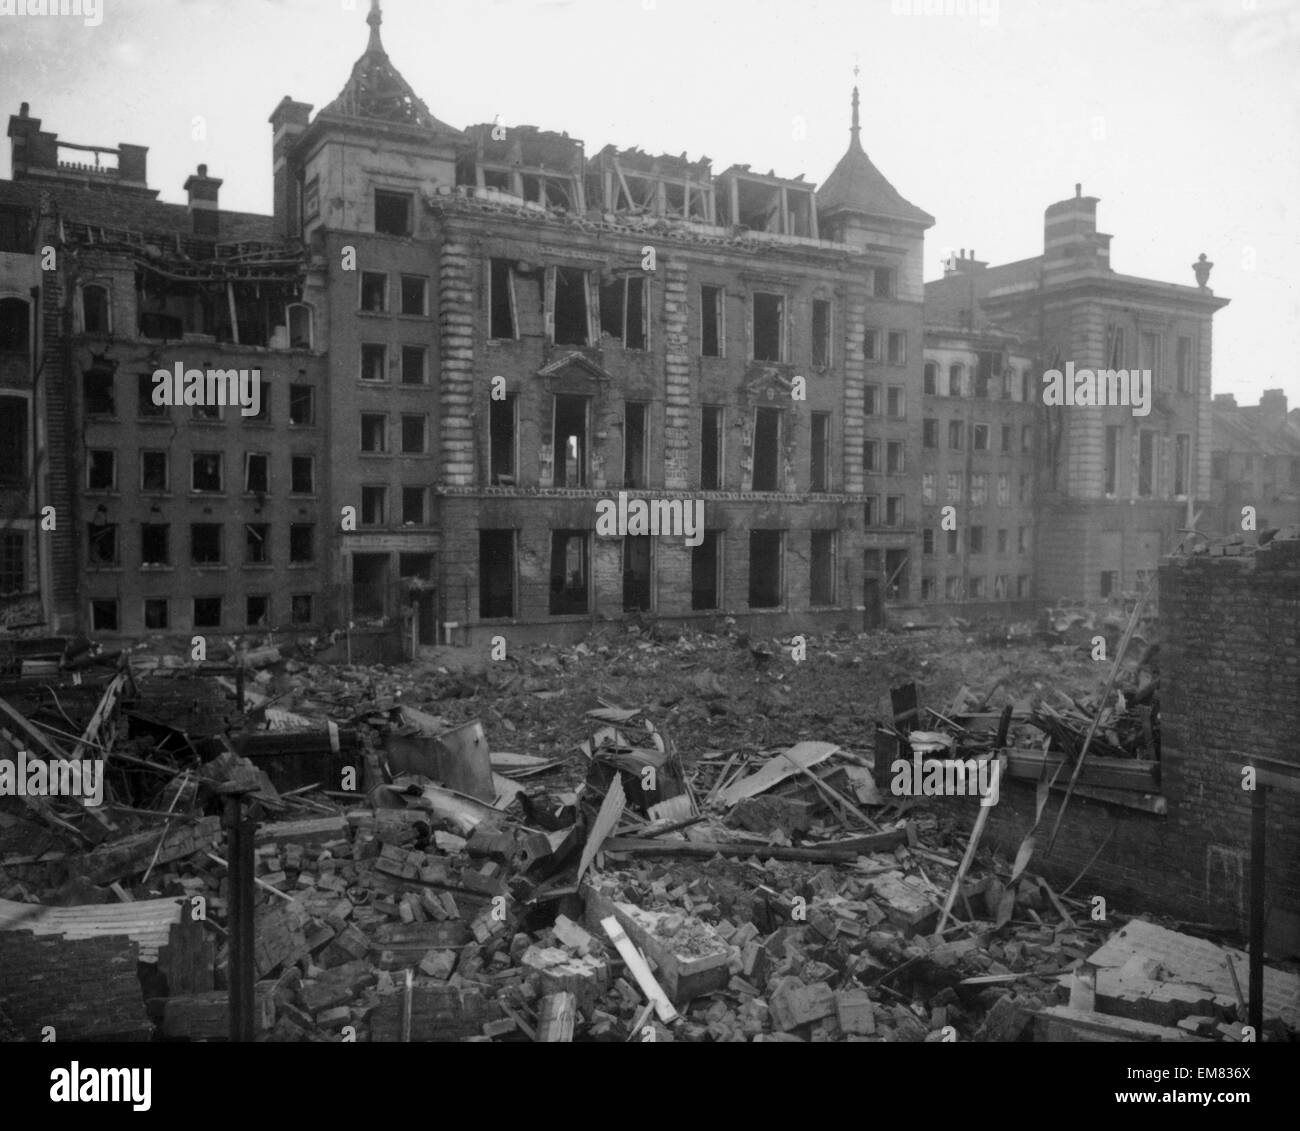 WW2 Air Raid Damage 1943 Bombed fire station at Tooting in London. - Stock Image